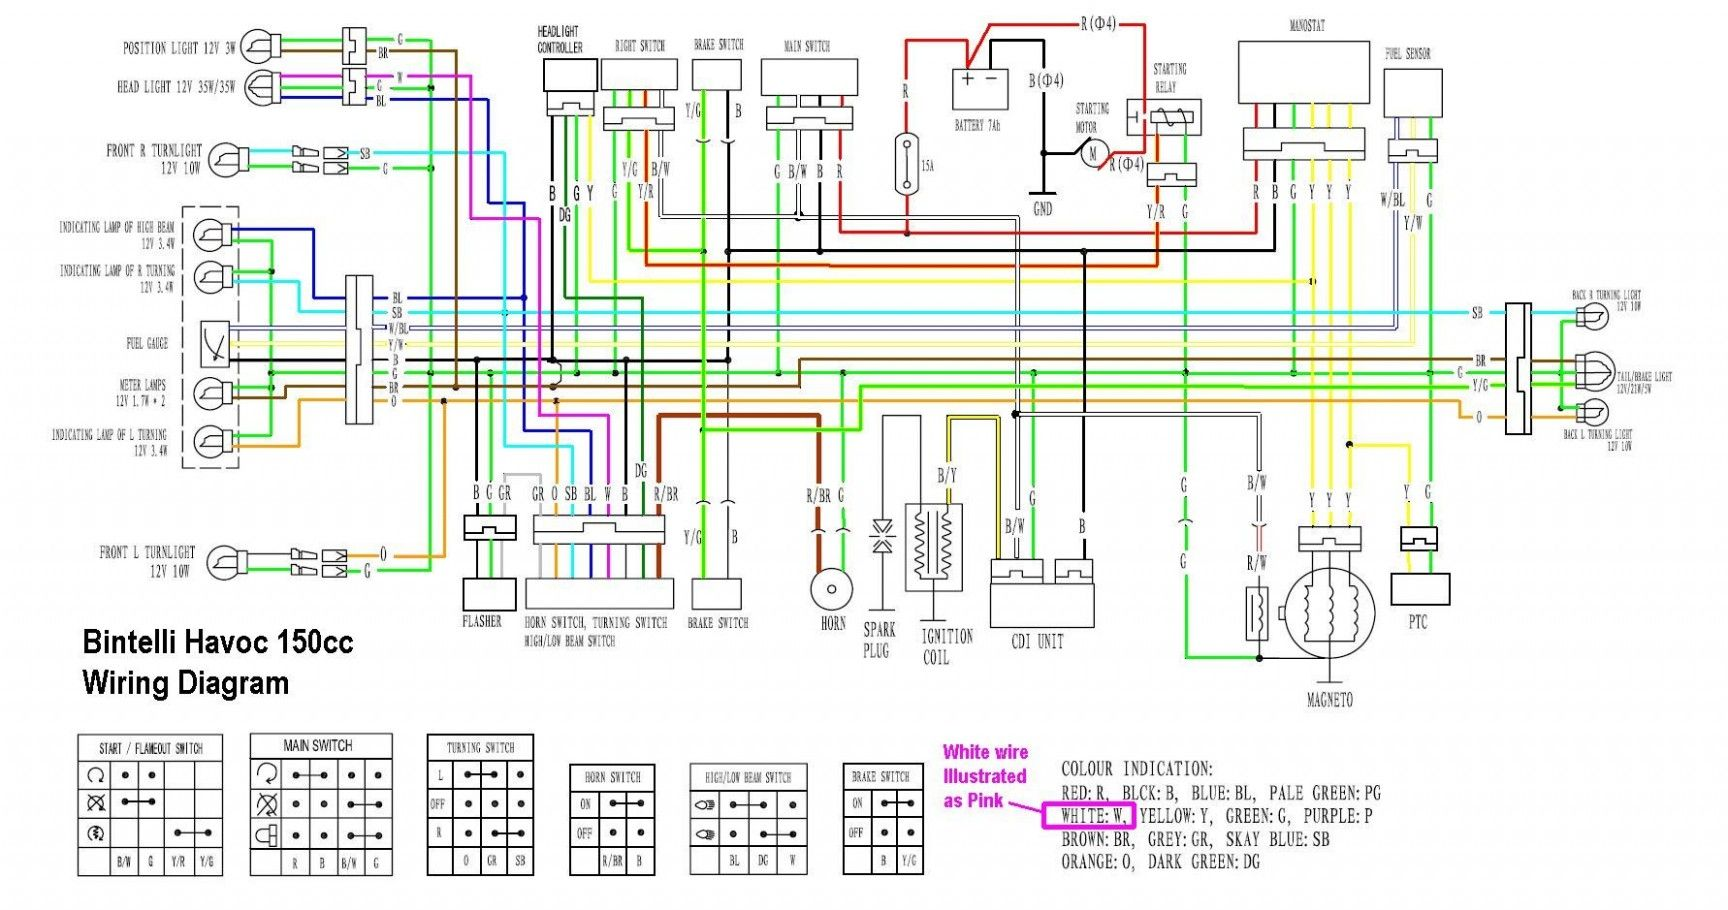 Gy7 Engine Diagram Manual Chinese Scooters 150cc Electrical Diagram